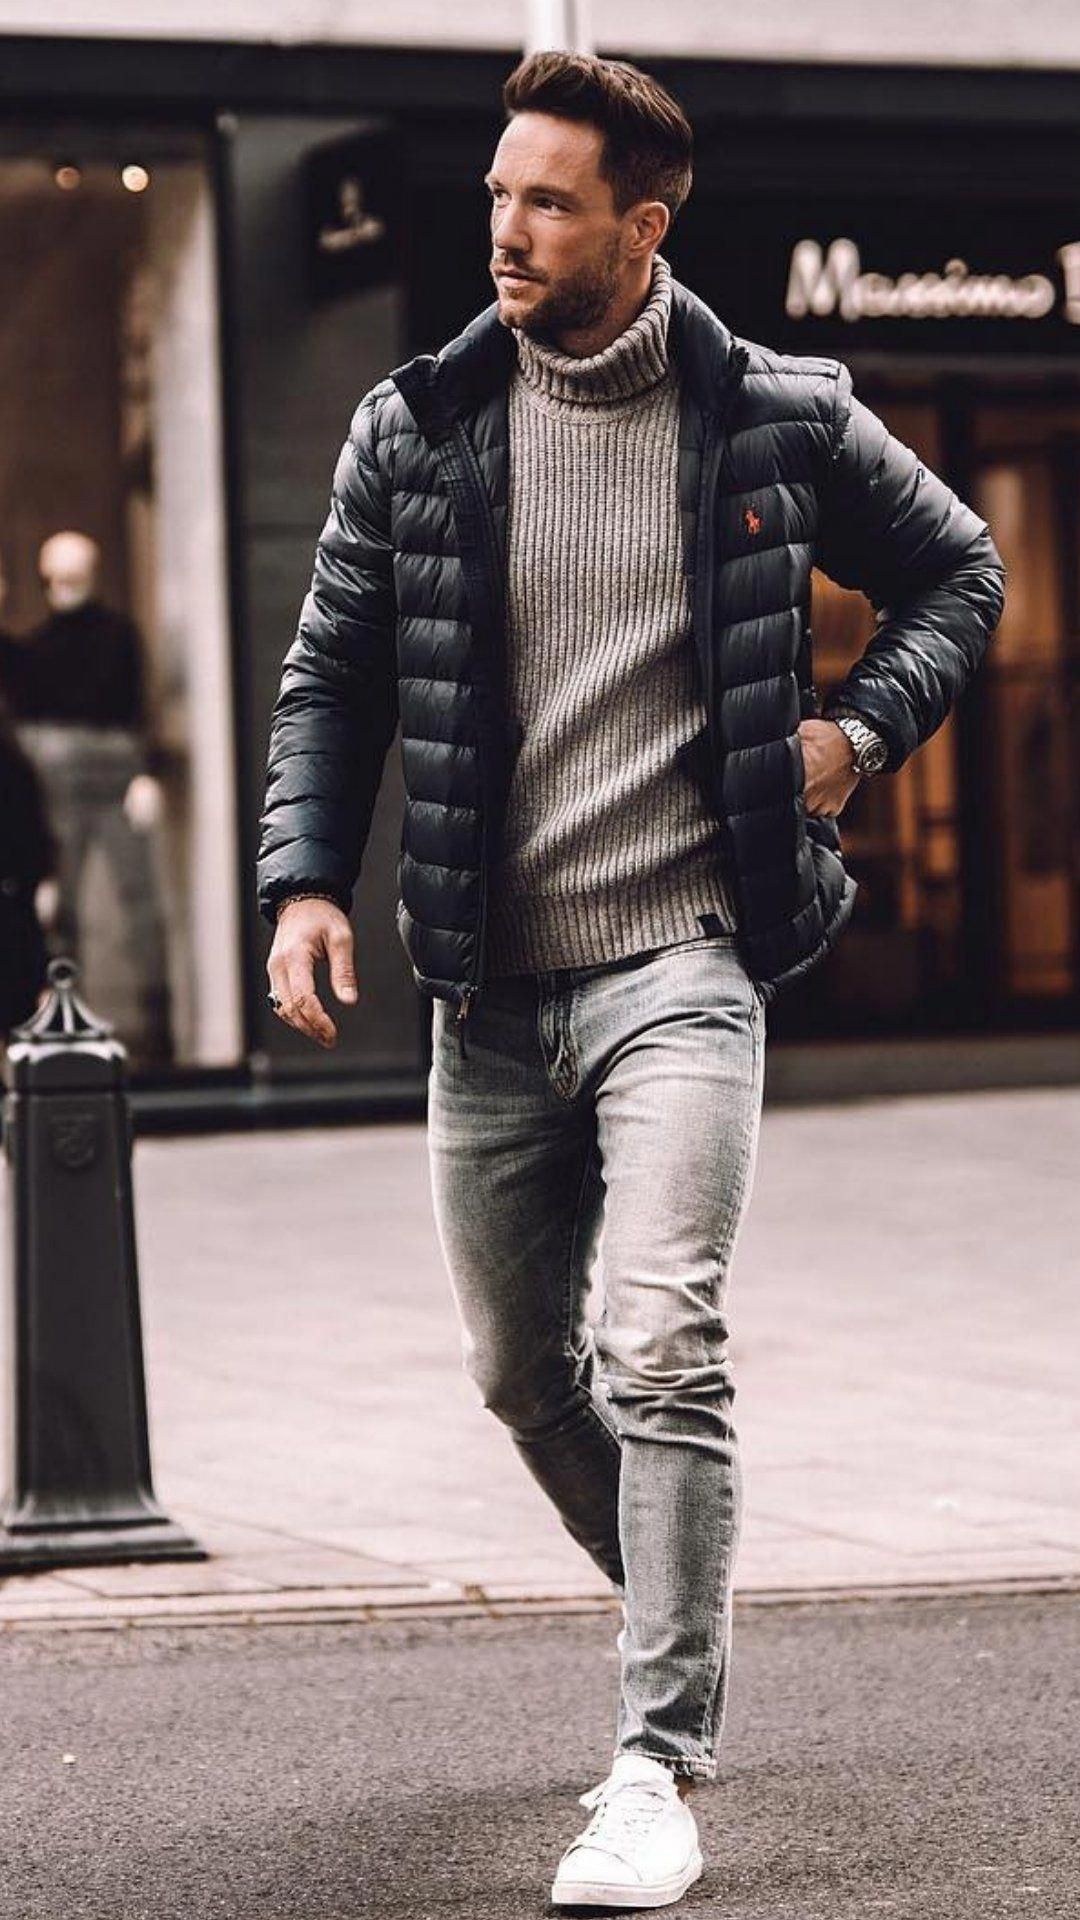 5 Coolest Winter Outfits You Can Steal